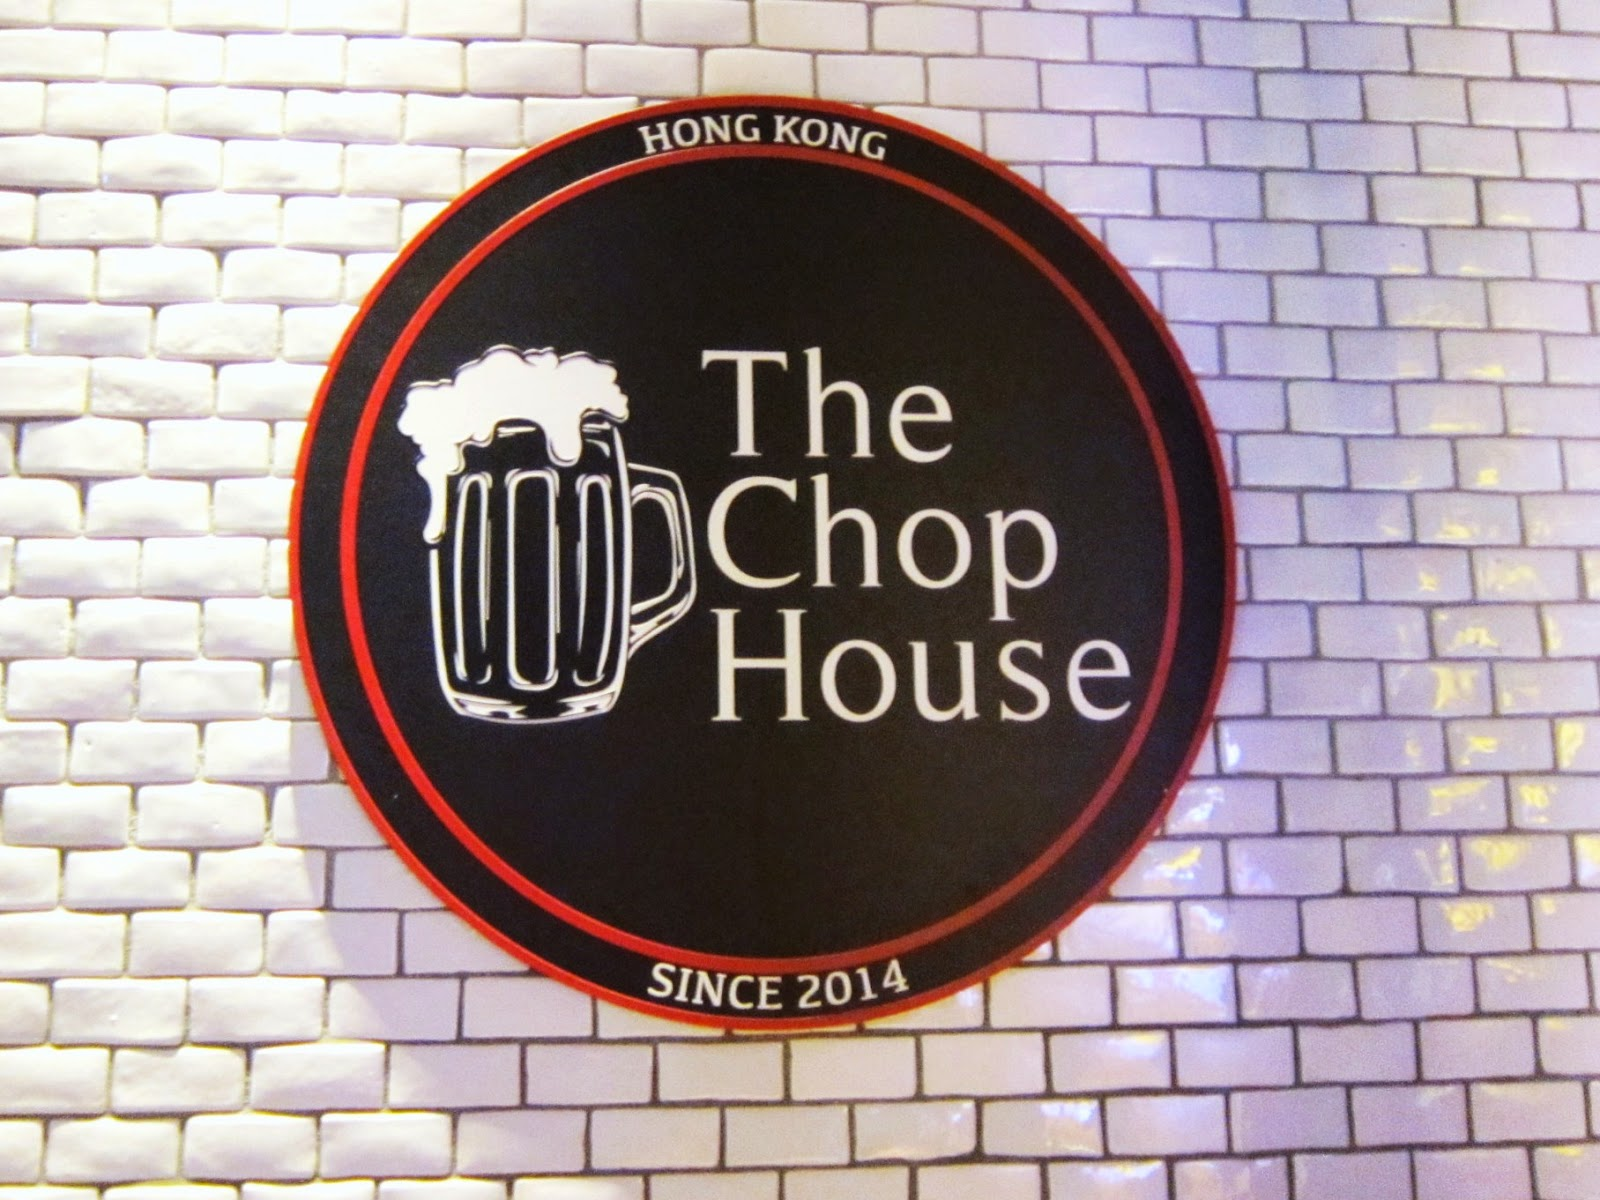 The Chop House - 豬扒,不一定是醜的